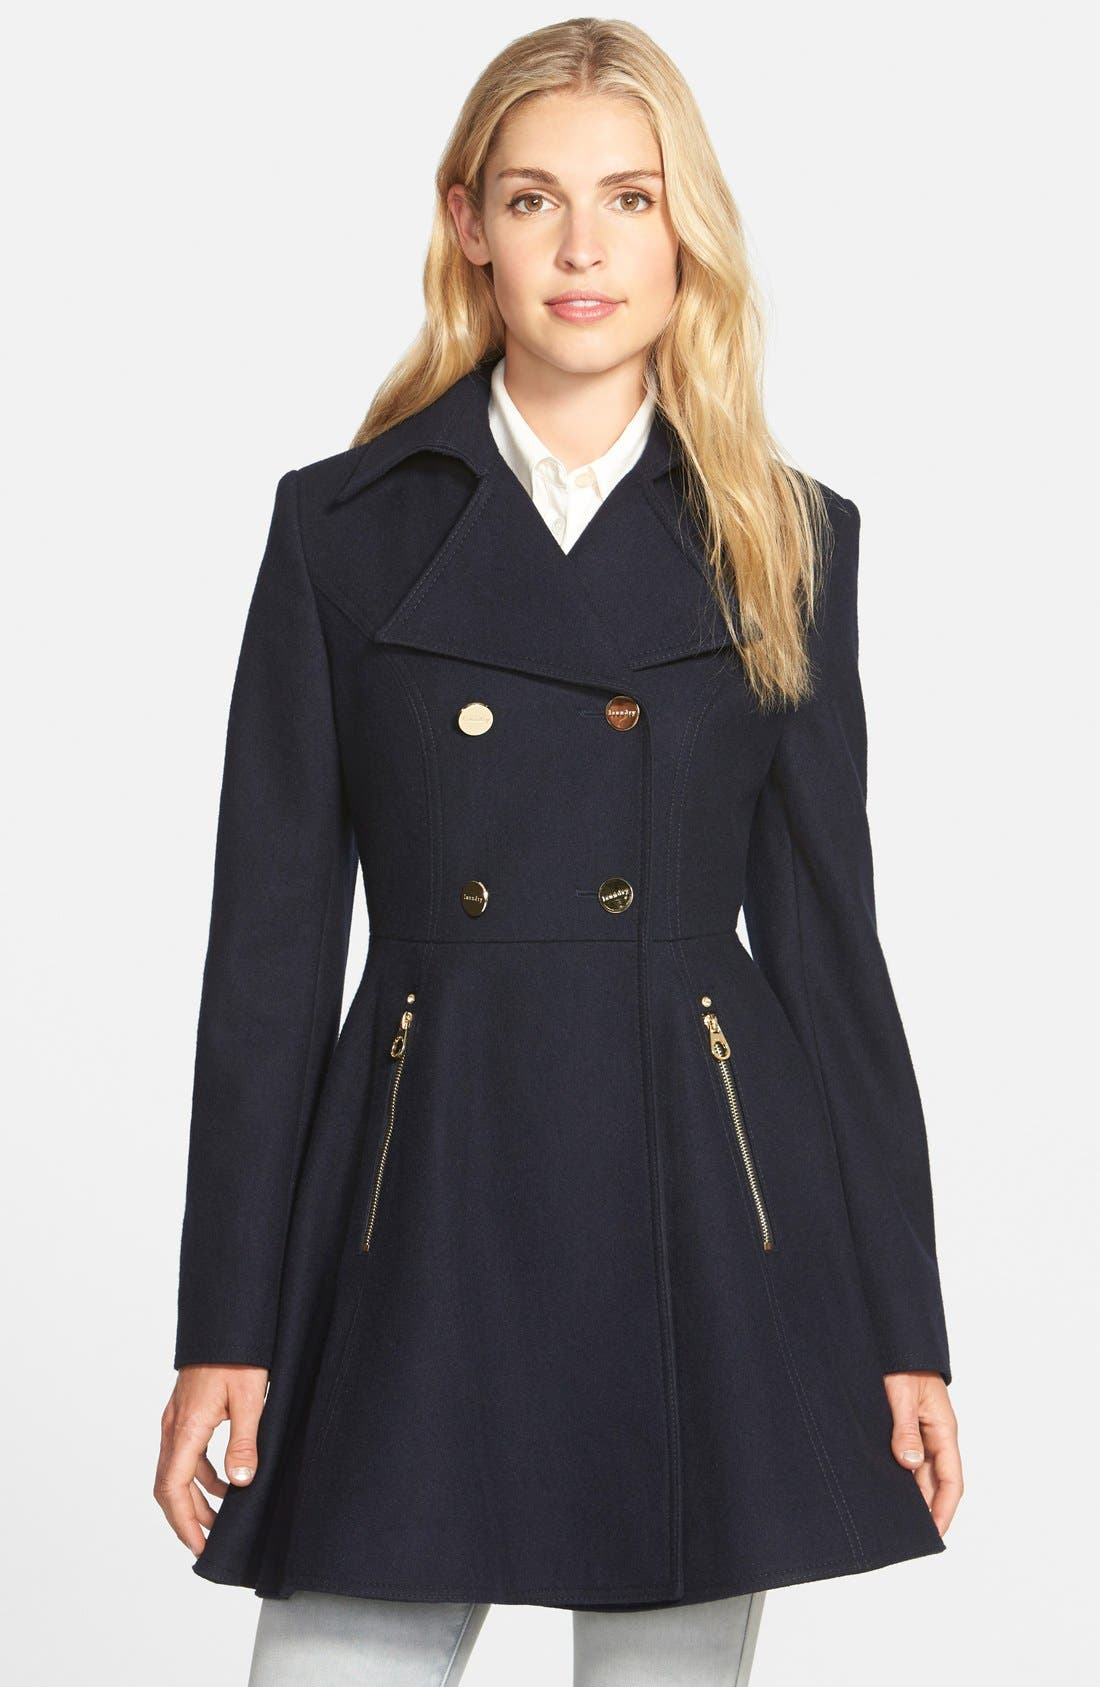 Laundry by Shelli Segal Double Breasted Fit & Flare Coat,                             Main thumbnail 1, color,                             Navy